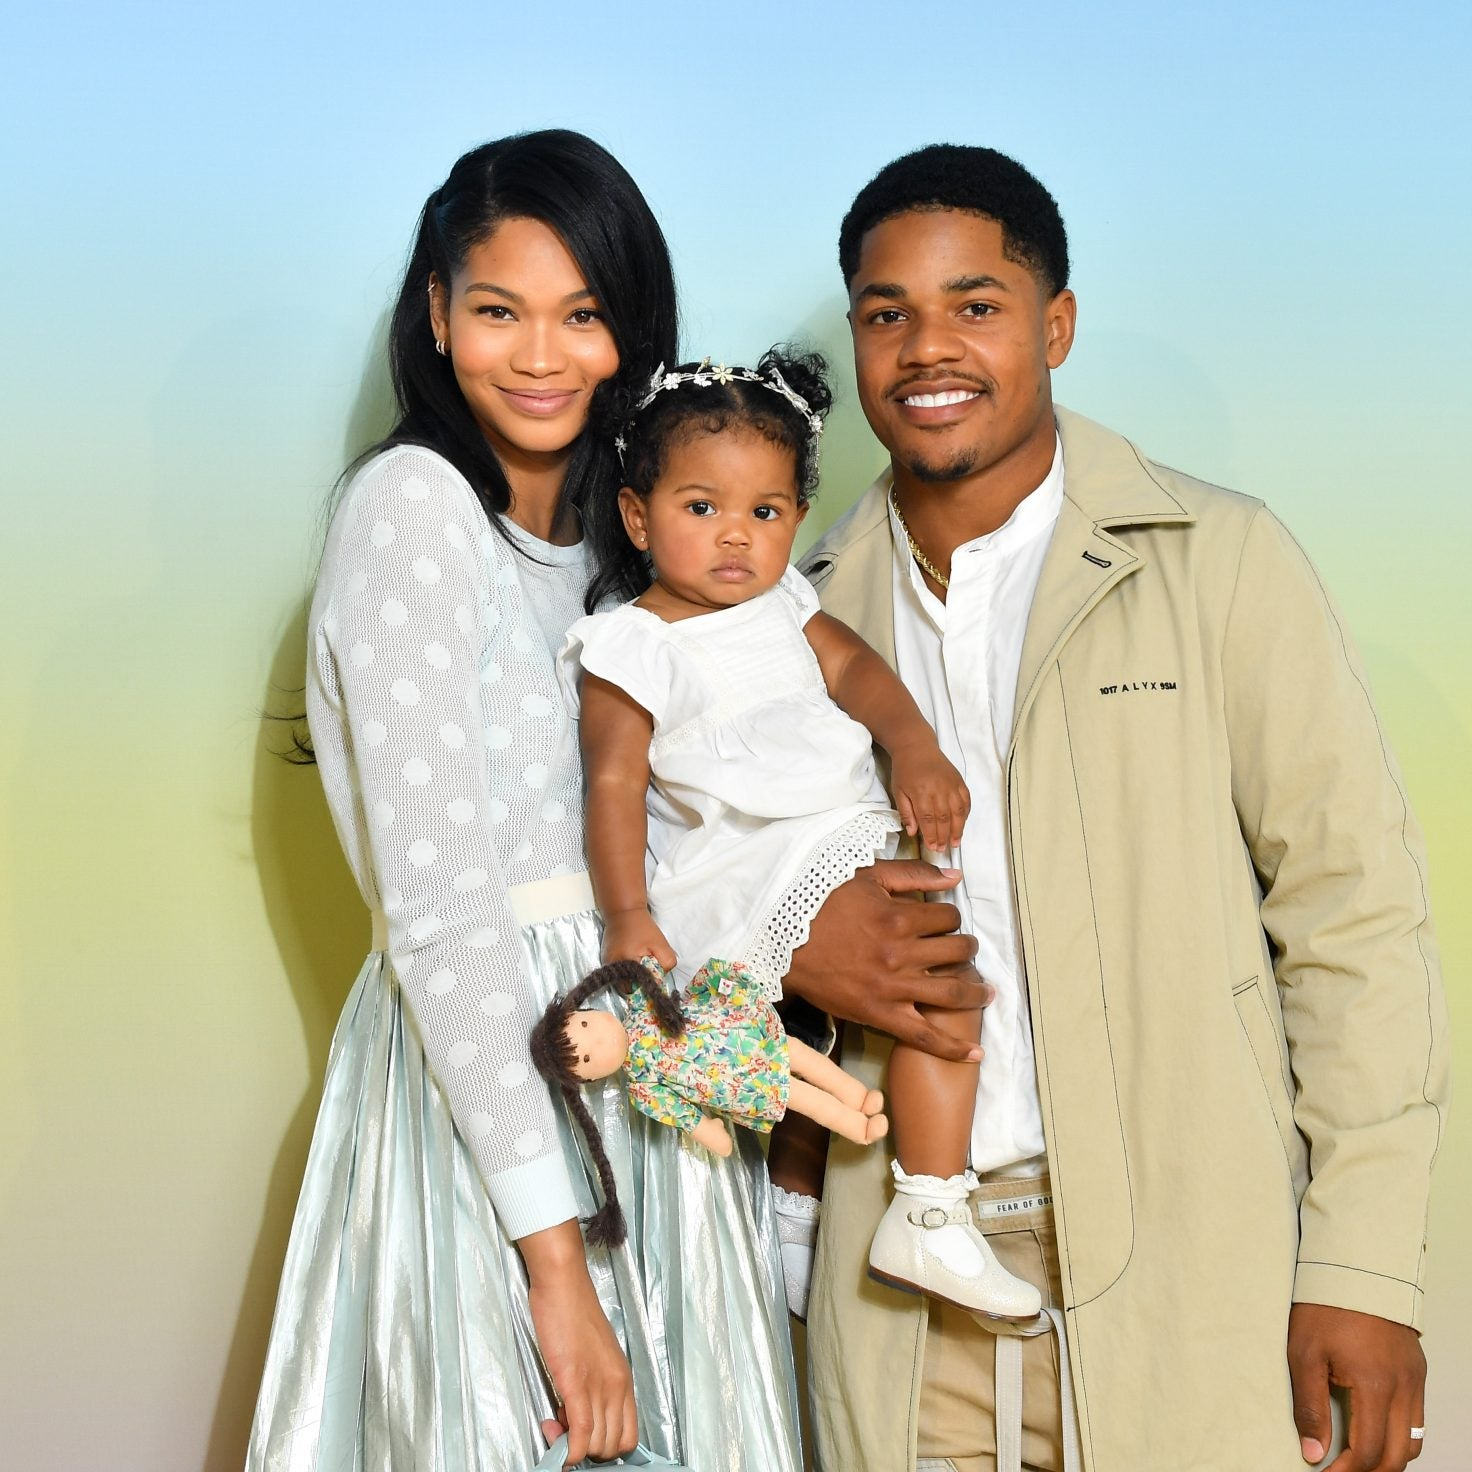 Chanel Iman and Husband Sterling Shepard Are Expecting Their Second Child